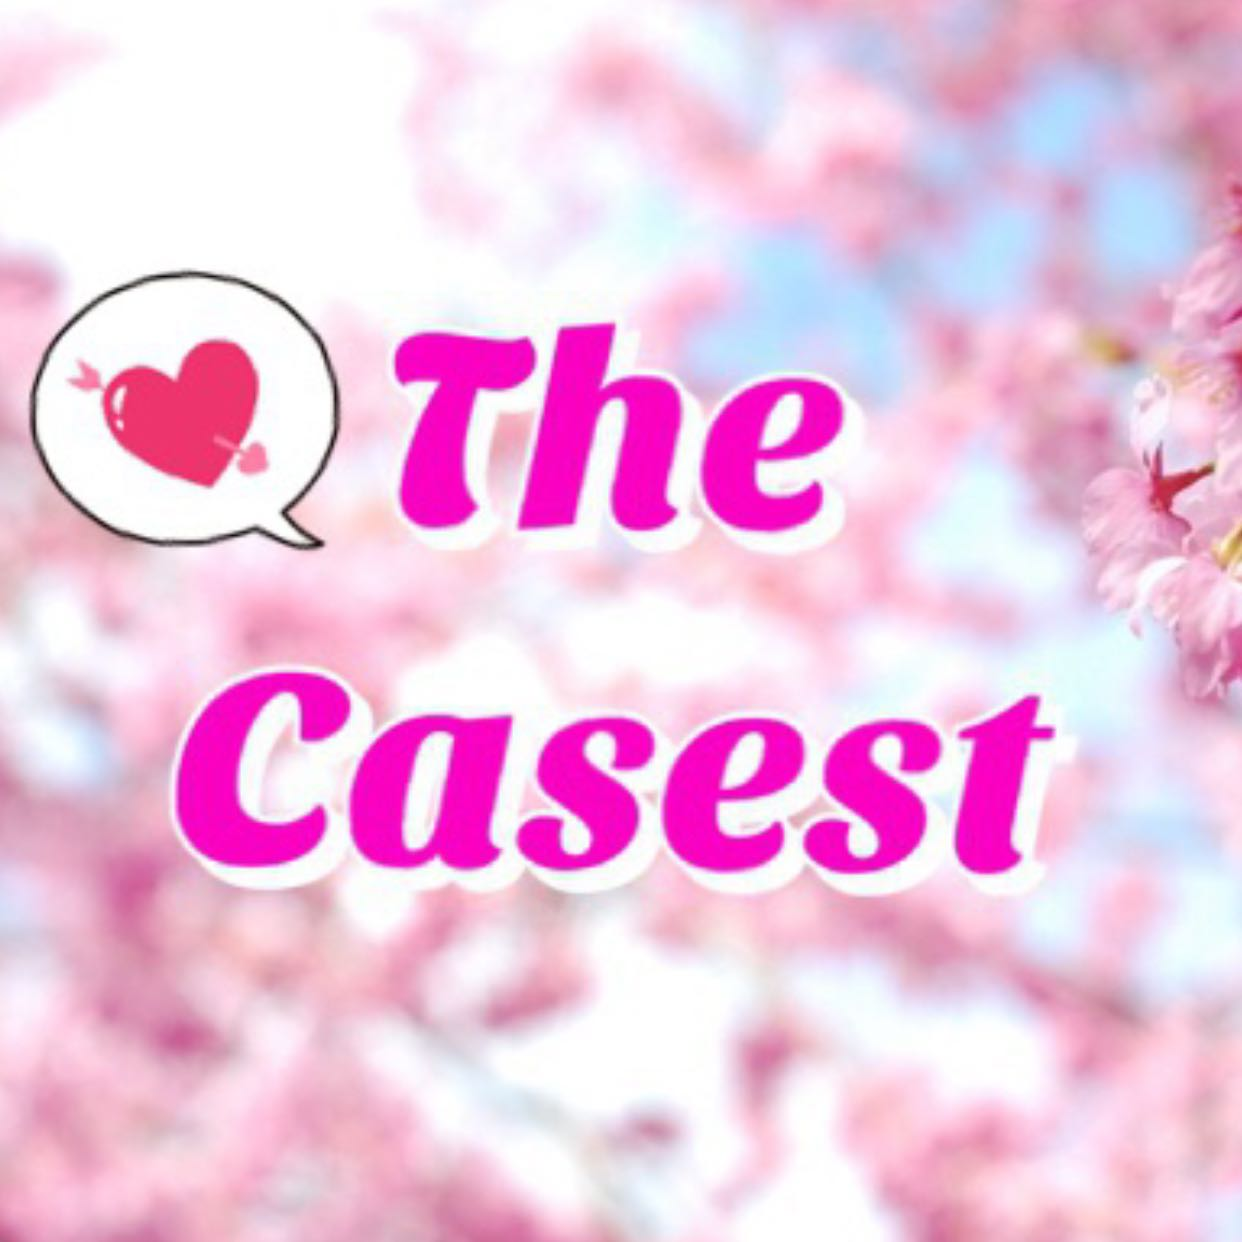 the_casest